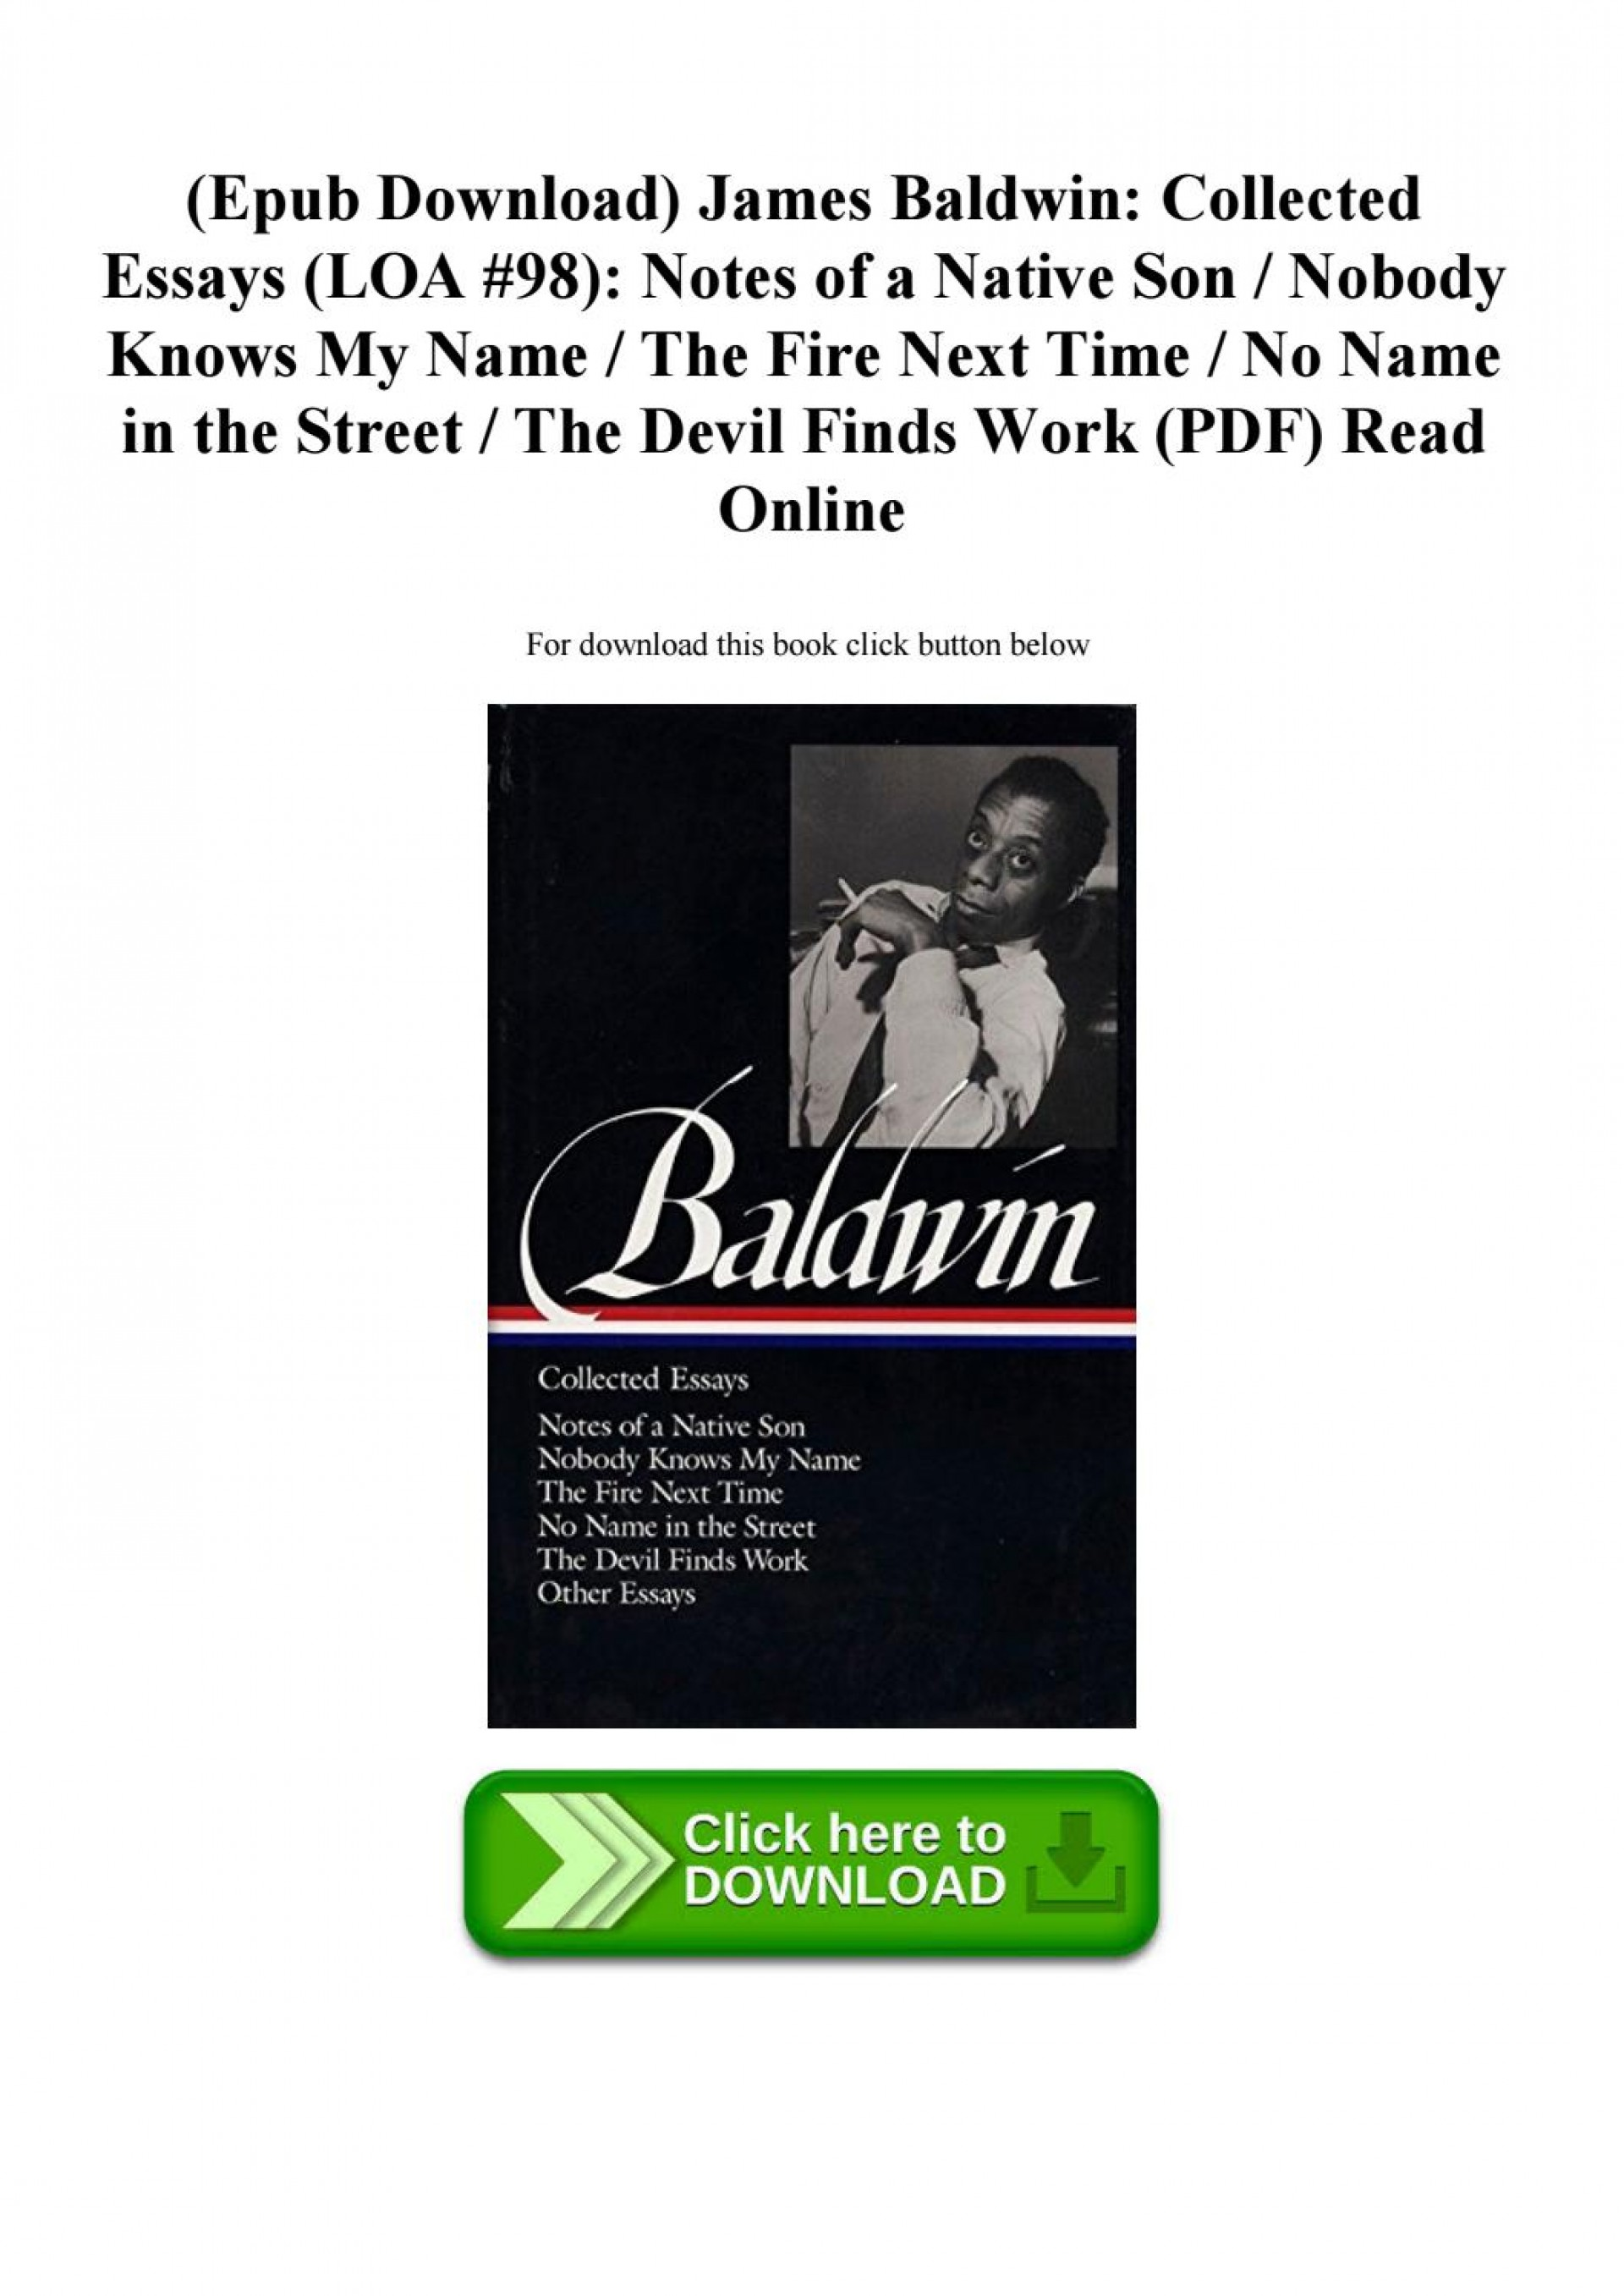 003 James Baldwin Collected Essays Essay Example Page 1 Wondrous Table Of Contents Ebook Google Books 1920